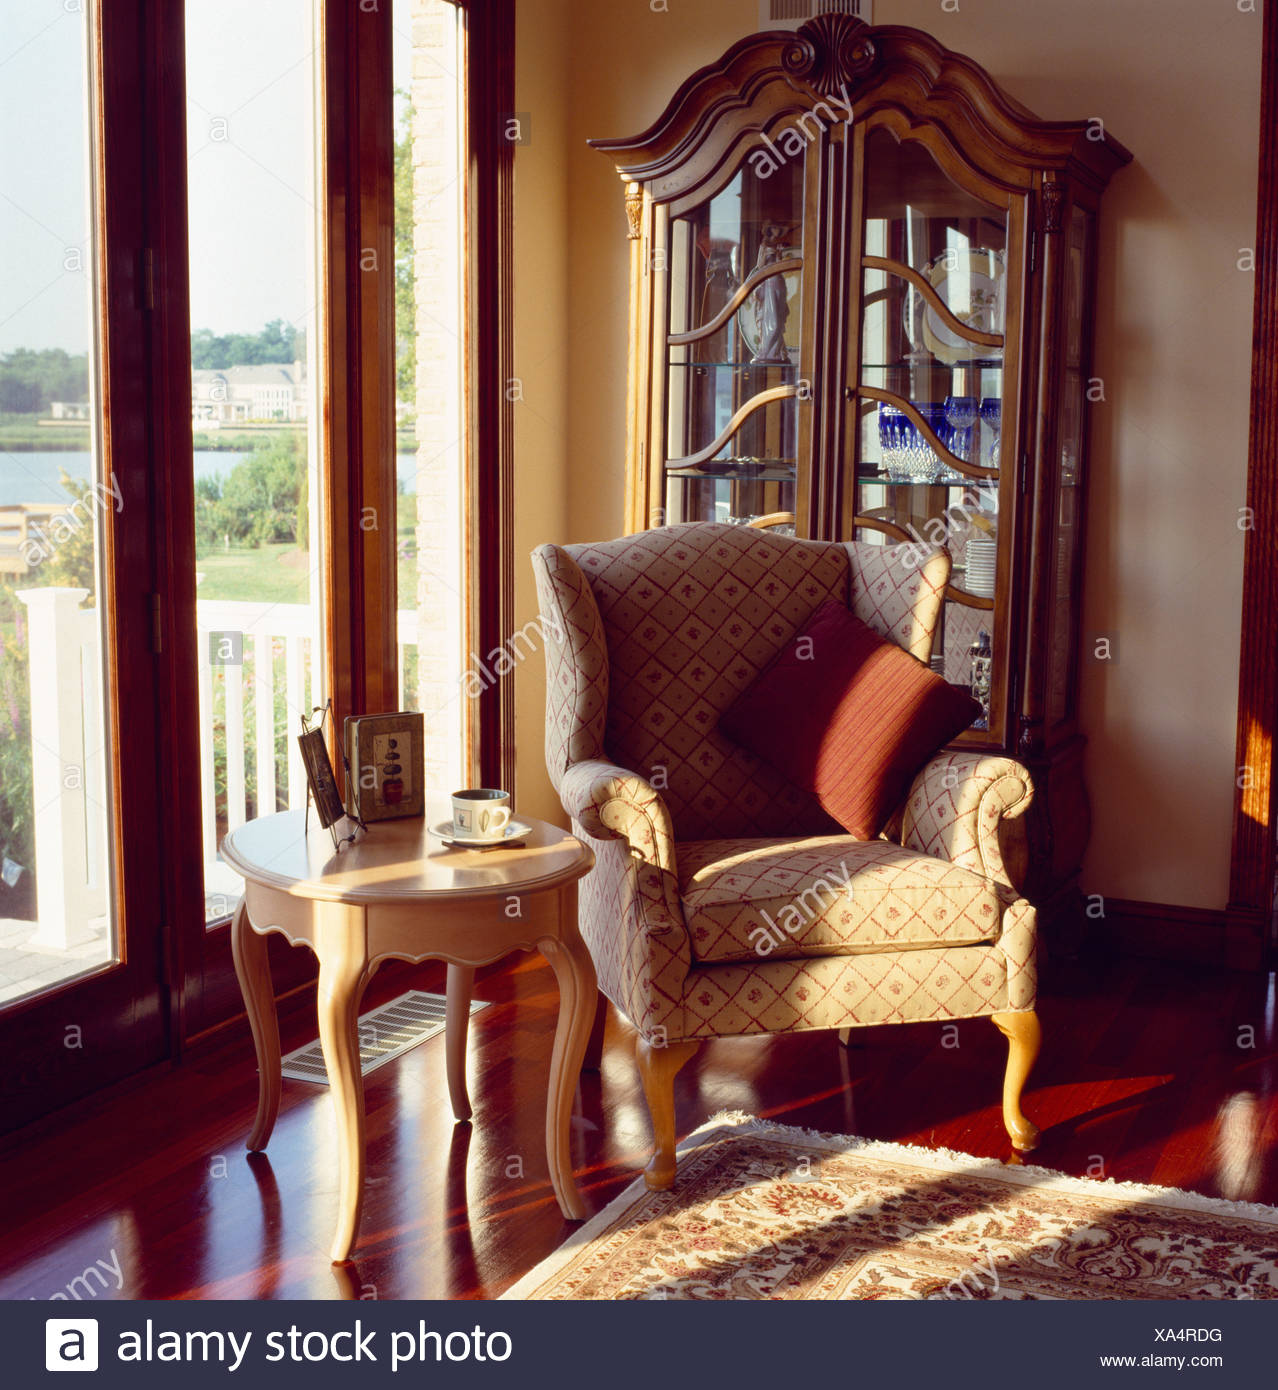 Neutral Patterned Armchair In Front Of Antique Glass Fronted